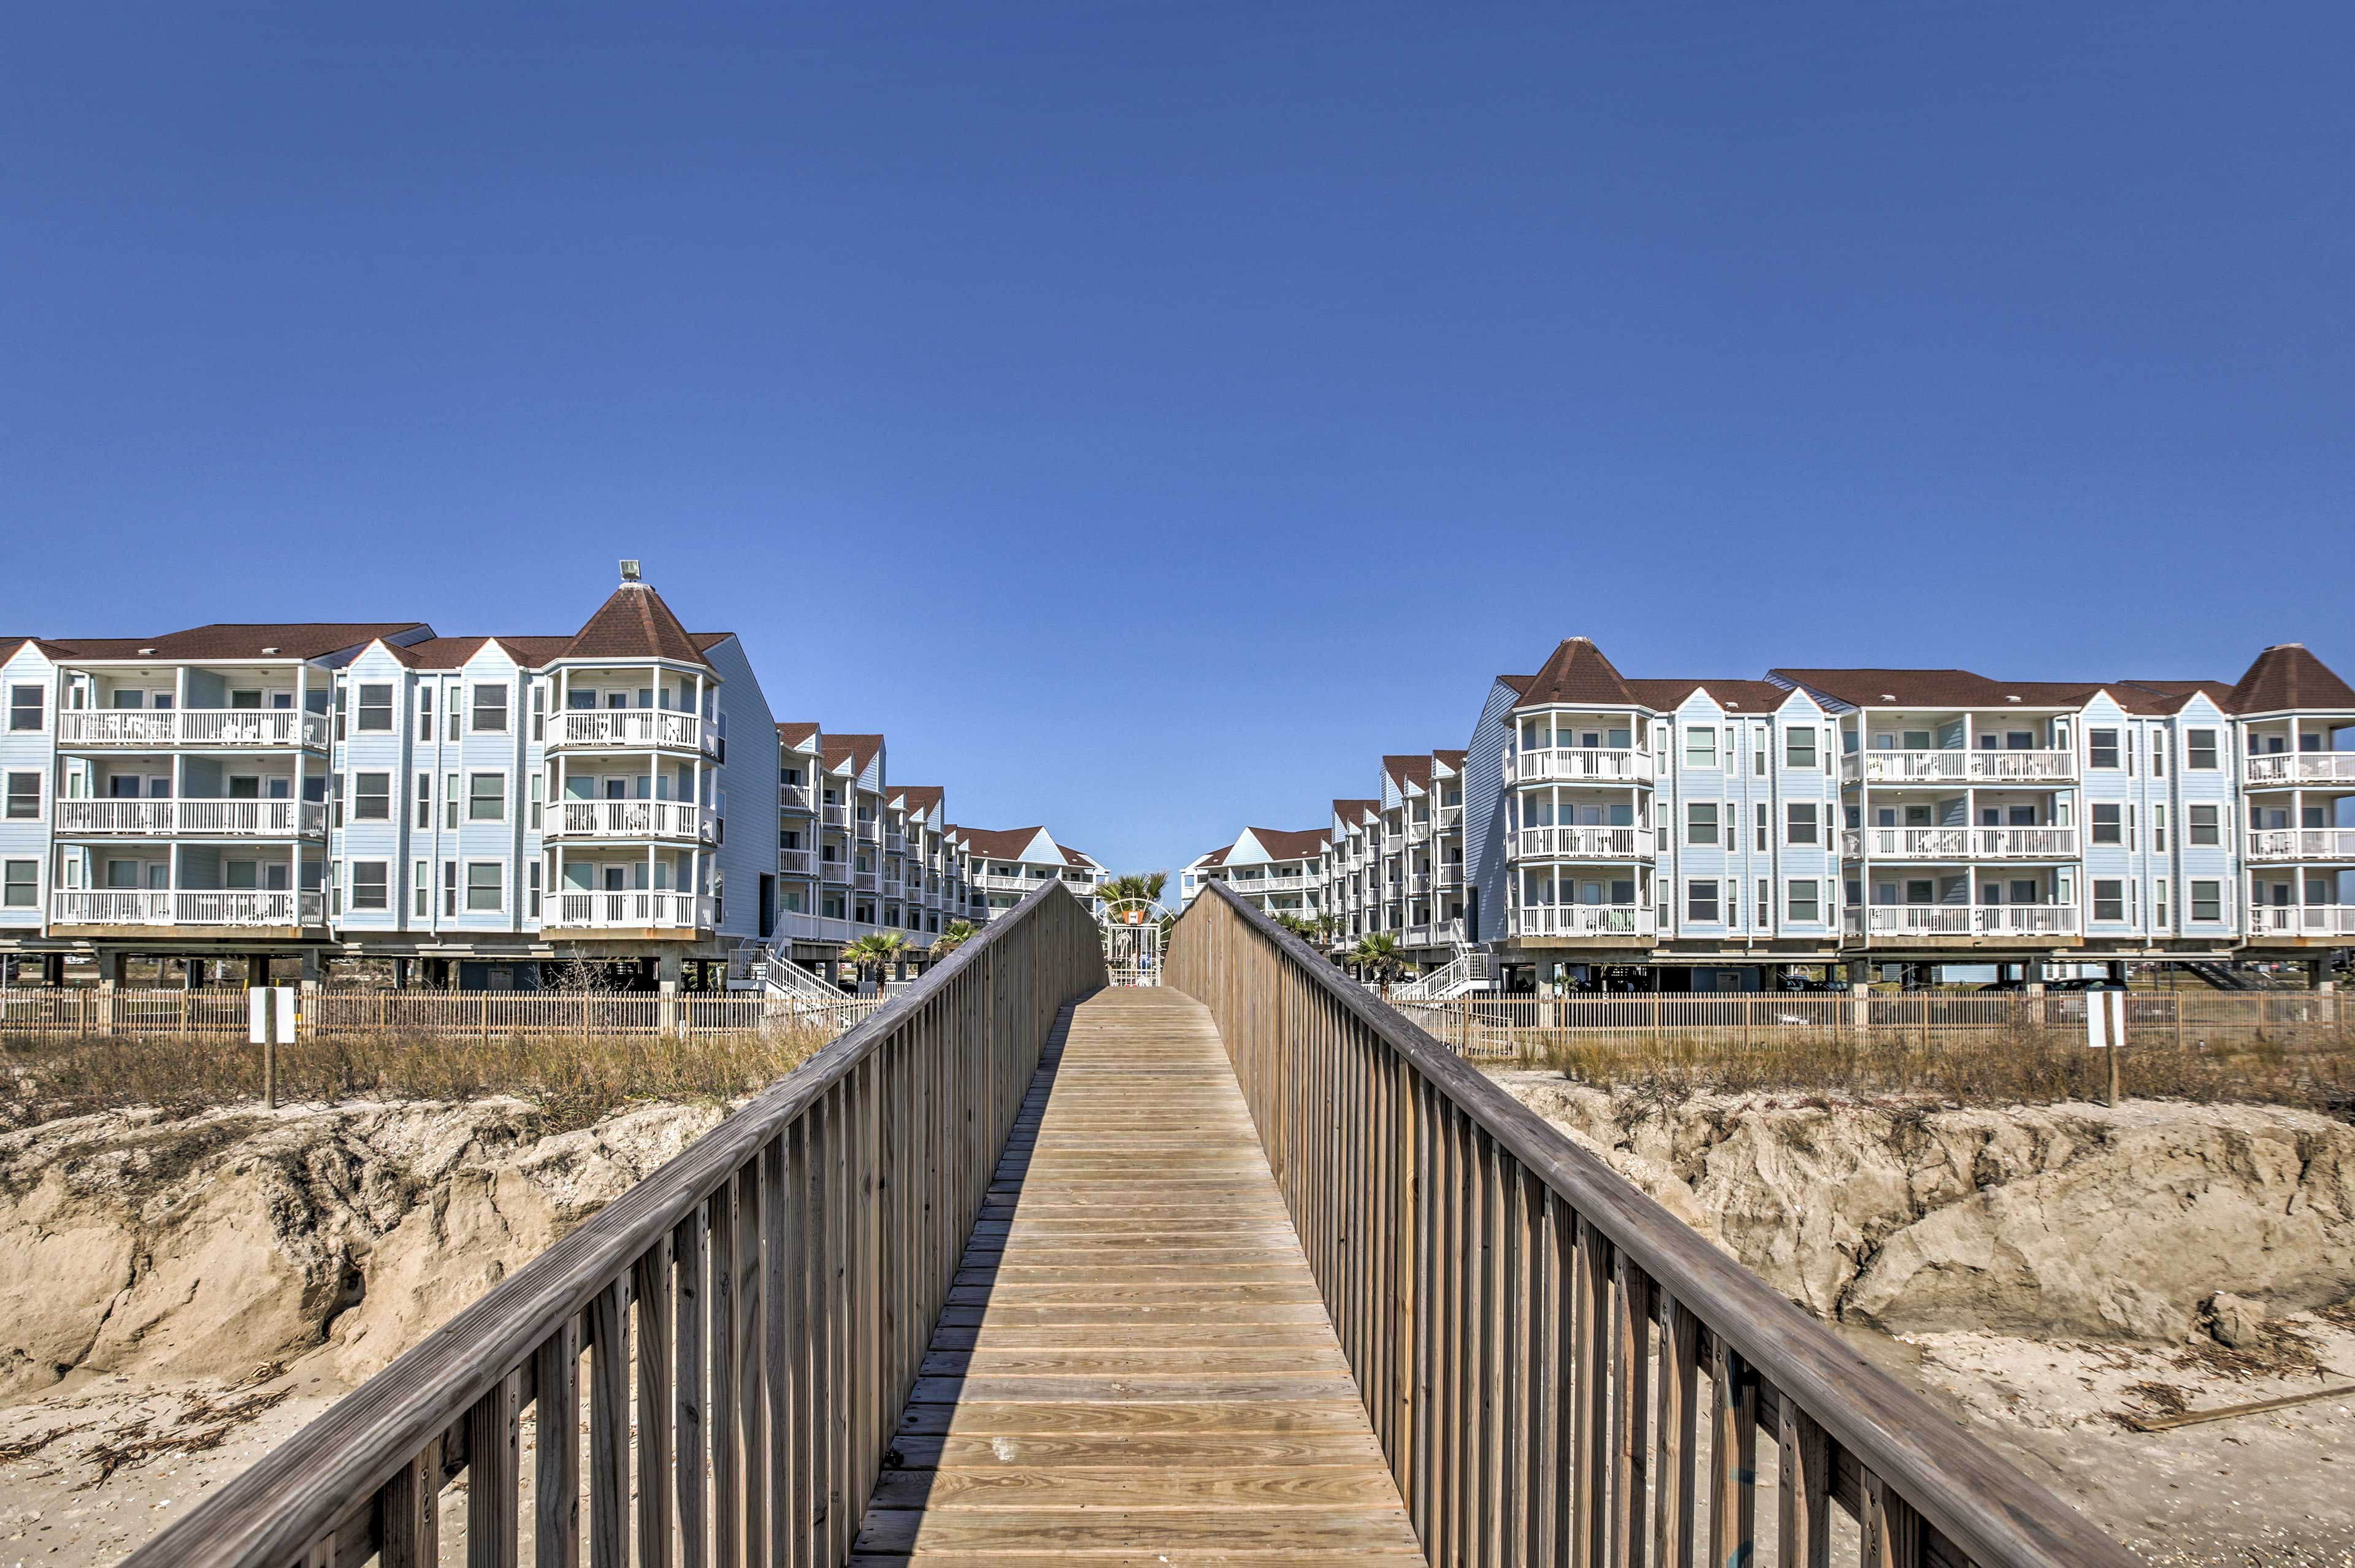 The boardwalk will lead you to the sandy shoreline of Galveston!